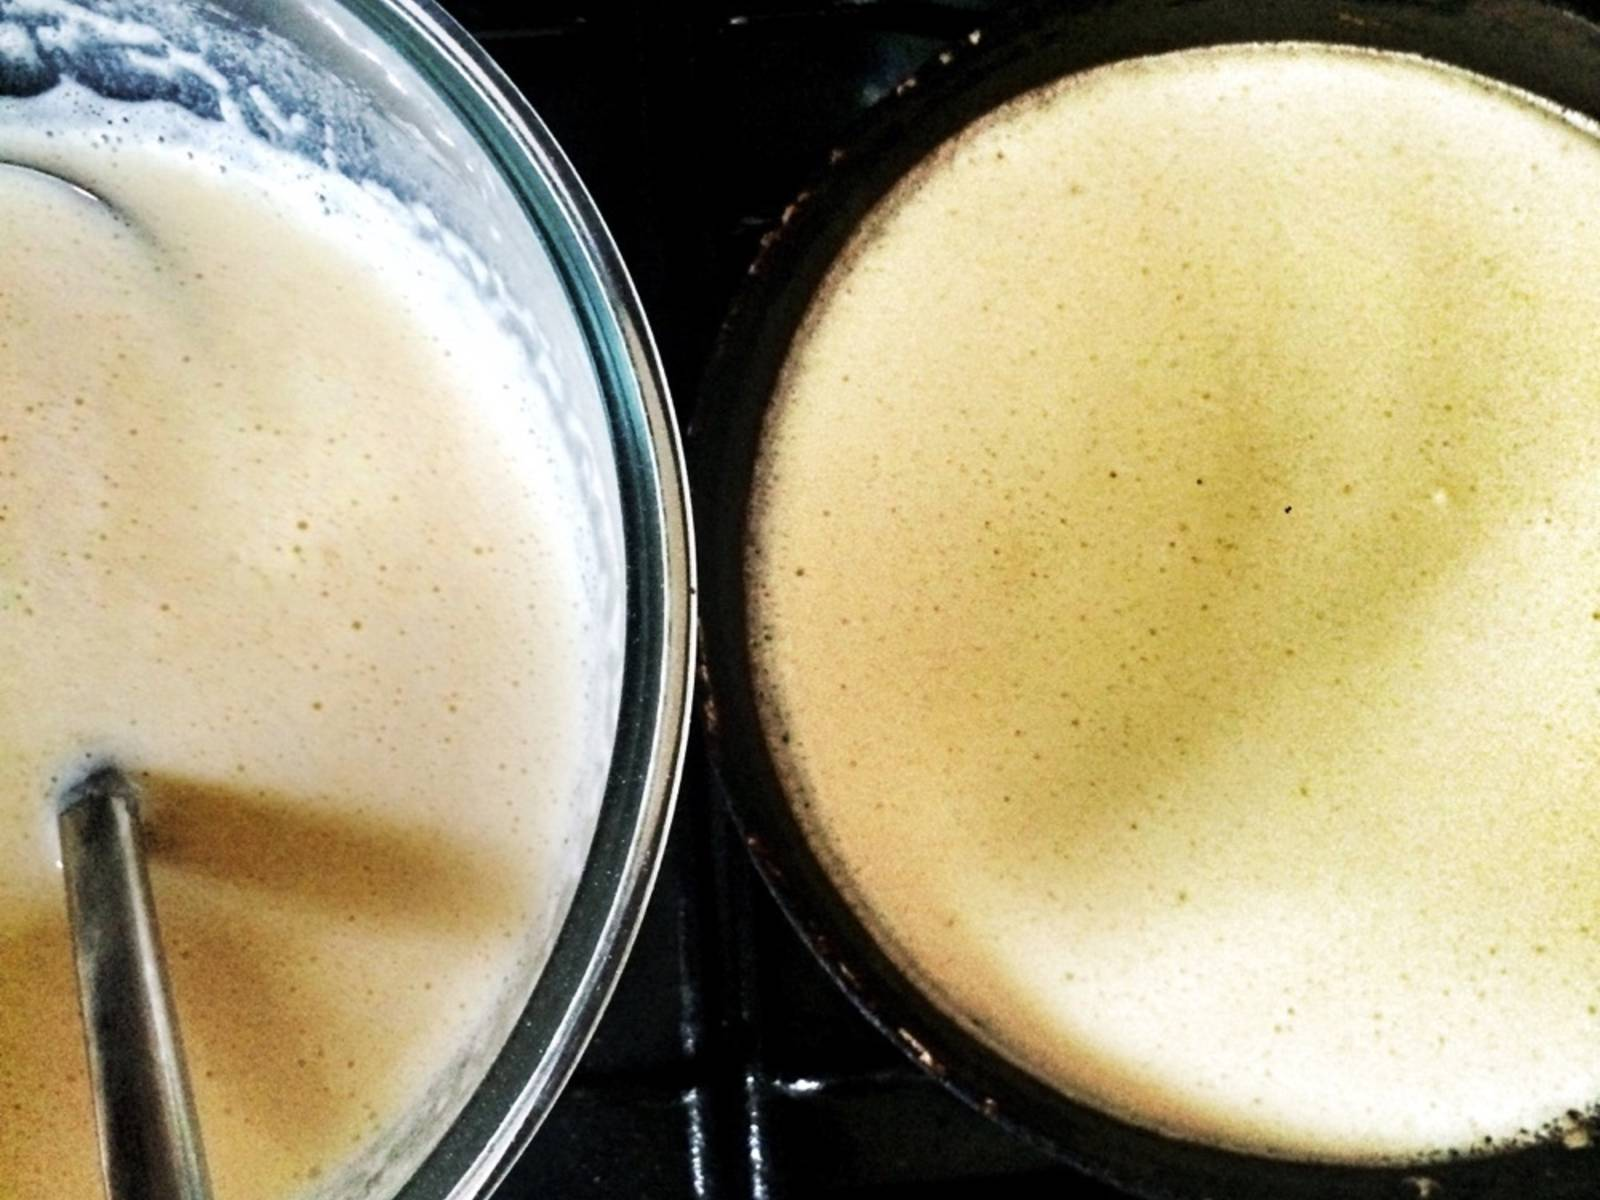 Time to fry our pancakes! Pan should be VERY hot! Add a bit of oil to the pan (use silicone brush) and add some of the batter to the pan. Fill all space. Approx. 2 min. on each side and it's ready! Repeat until all batter is used up.